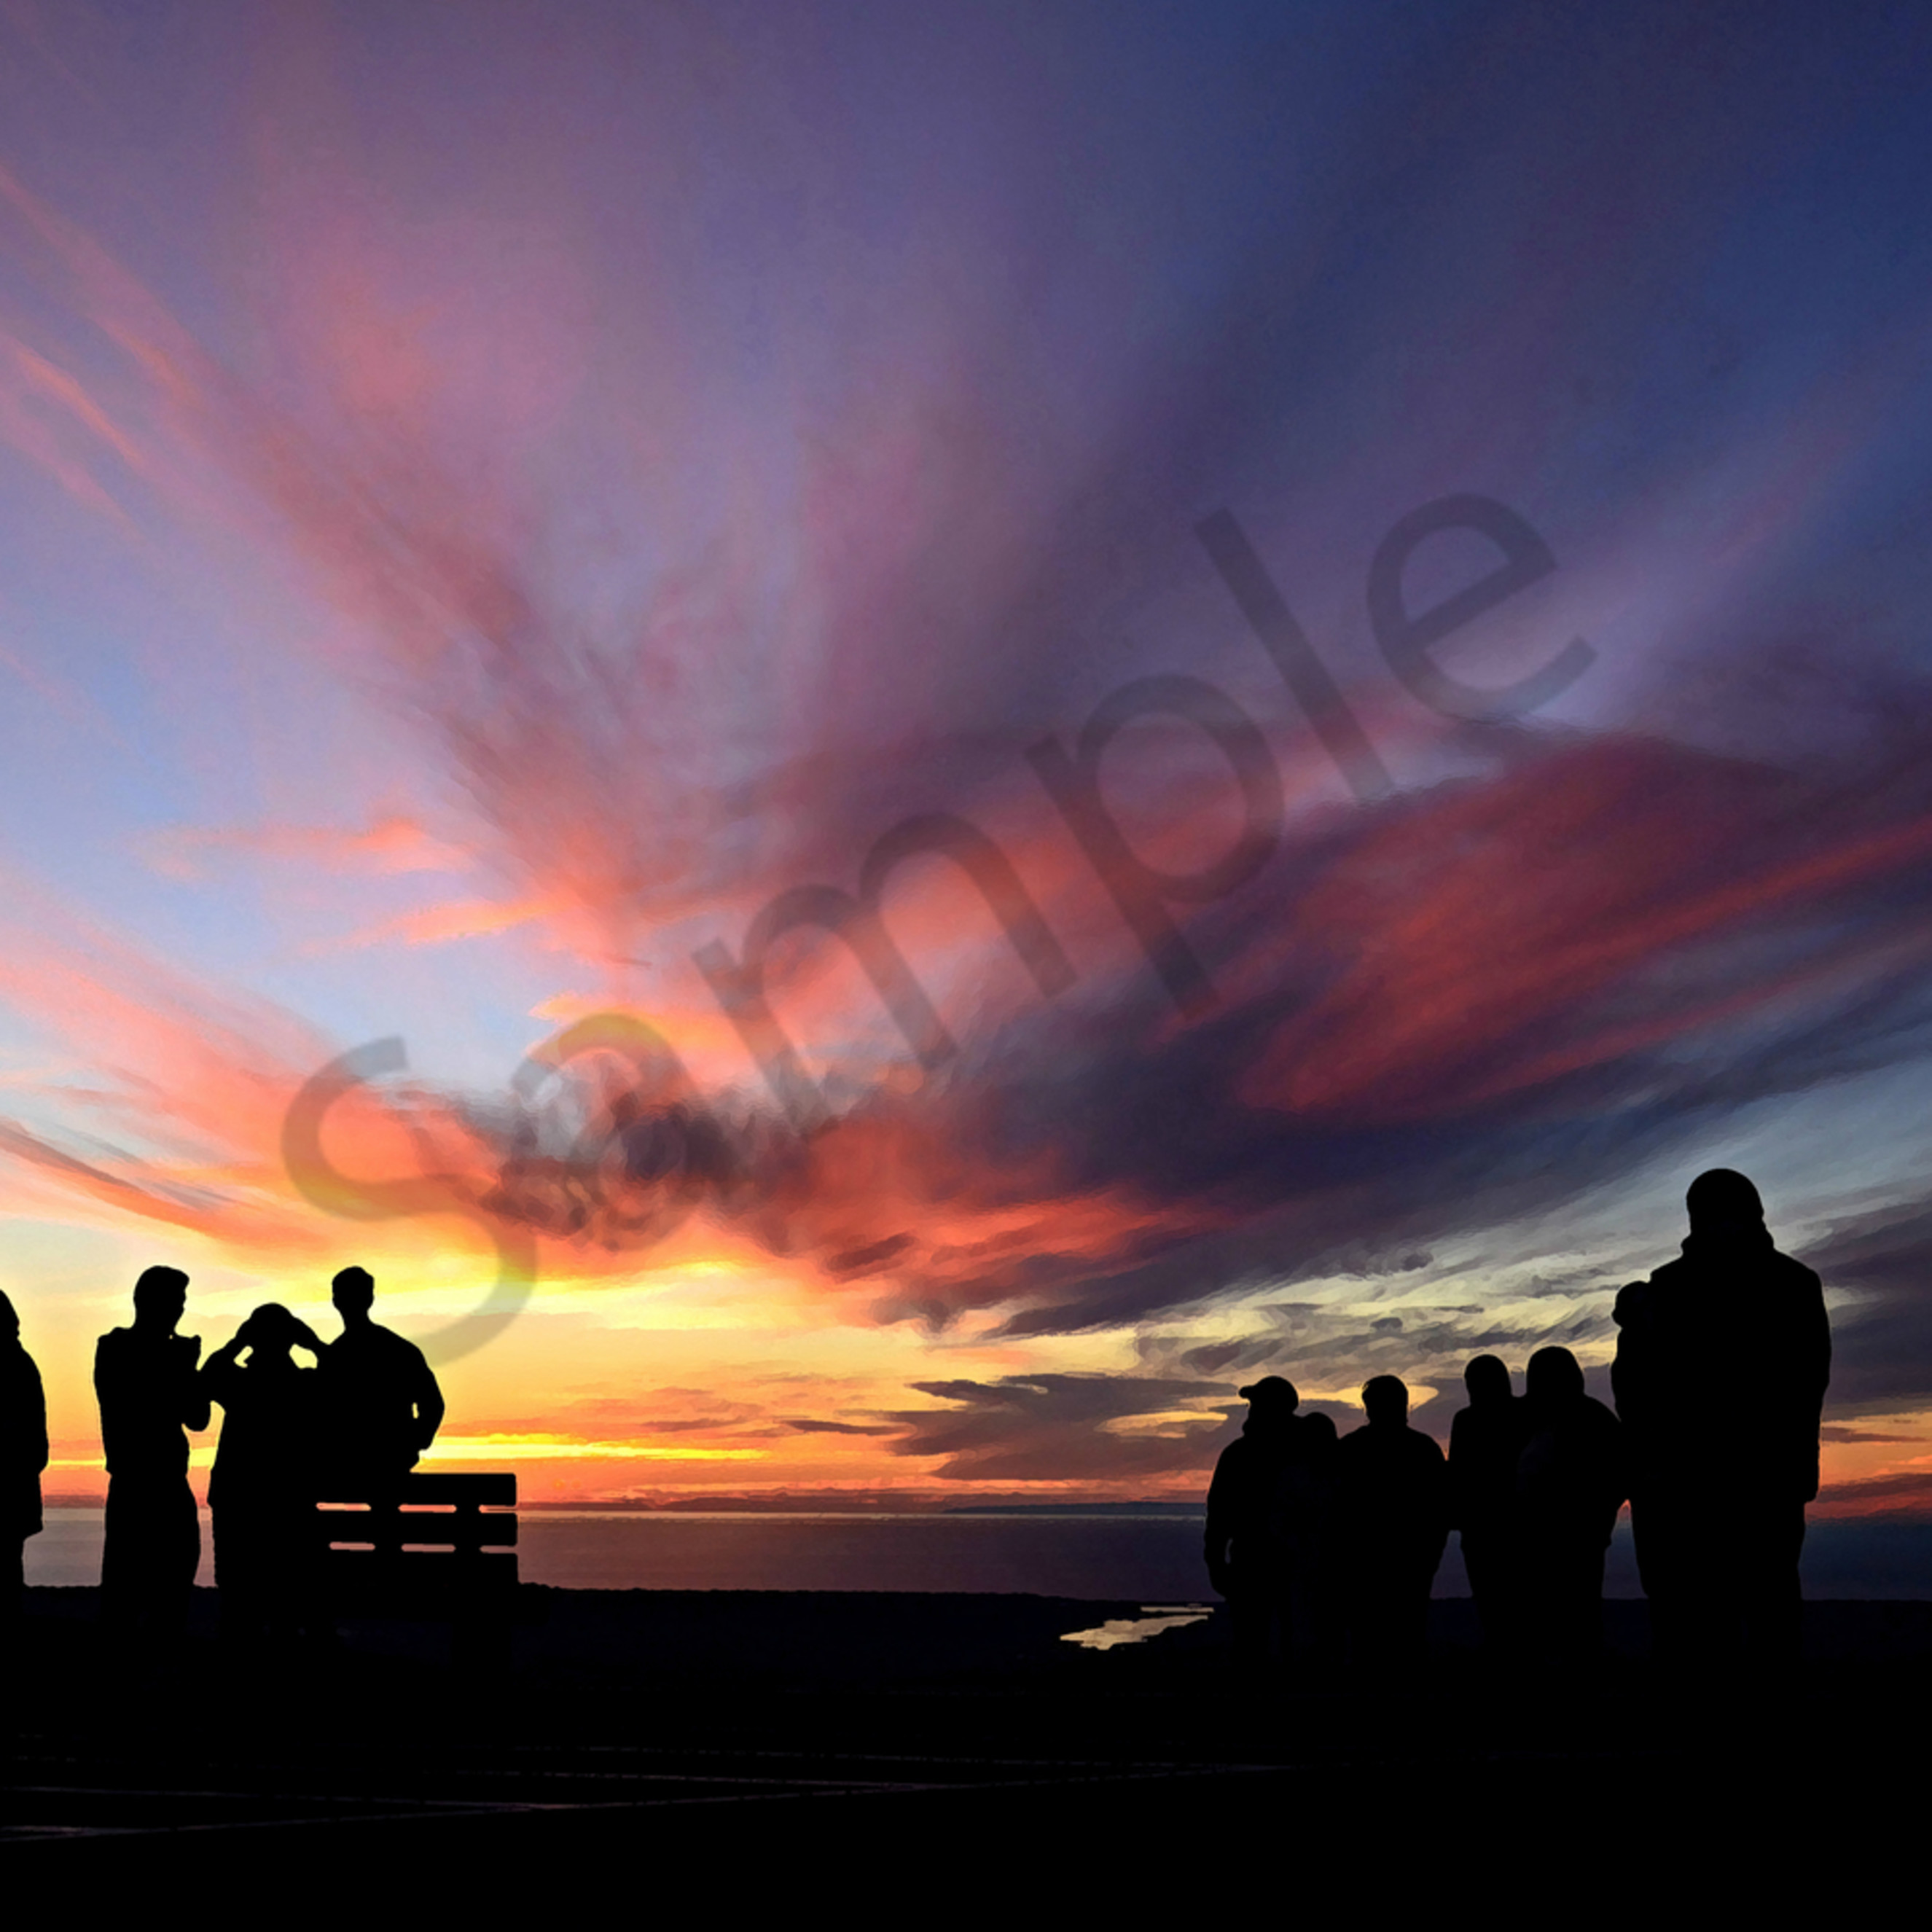 Dsc 8905   see how precious people are...   double peak park silhouette san diego   rmv blur shc   ps dry brush   tag ig5c5z